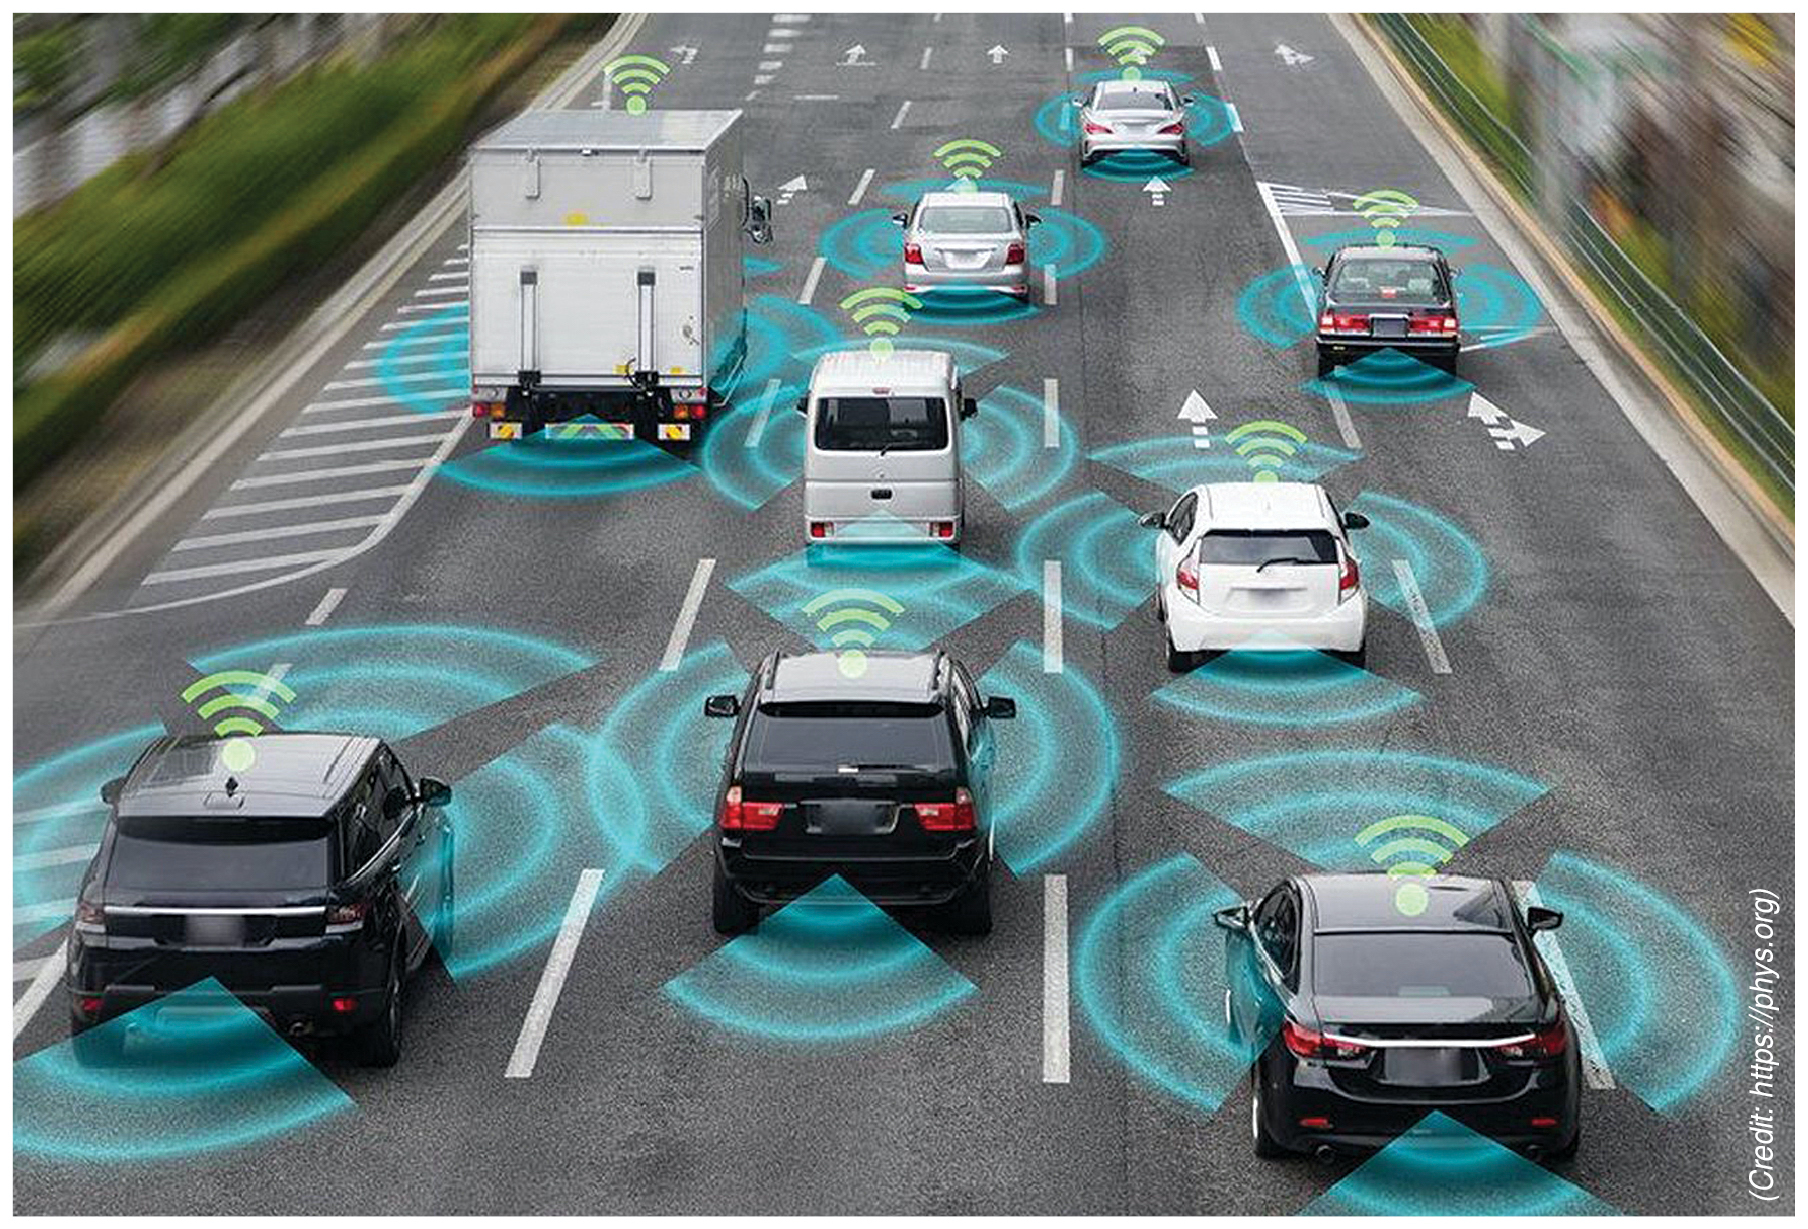 Intelligent Connectivity Driving The Future Of Transportation And Mobility Systems